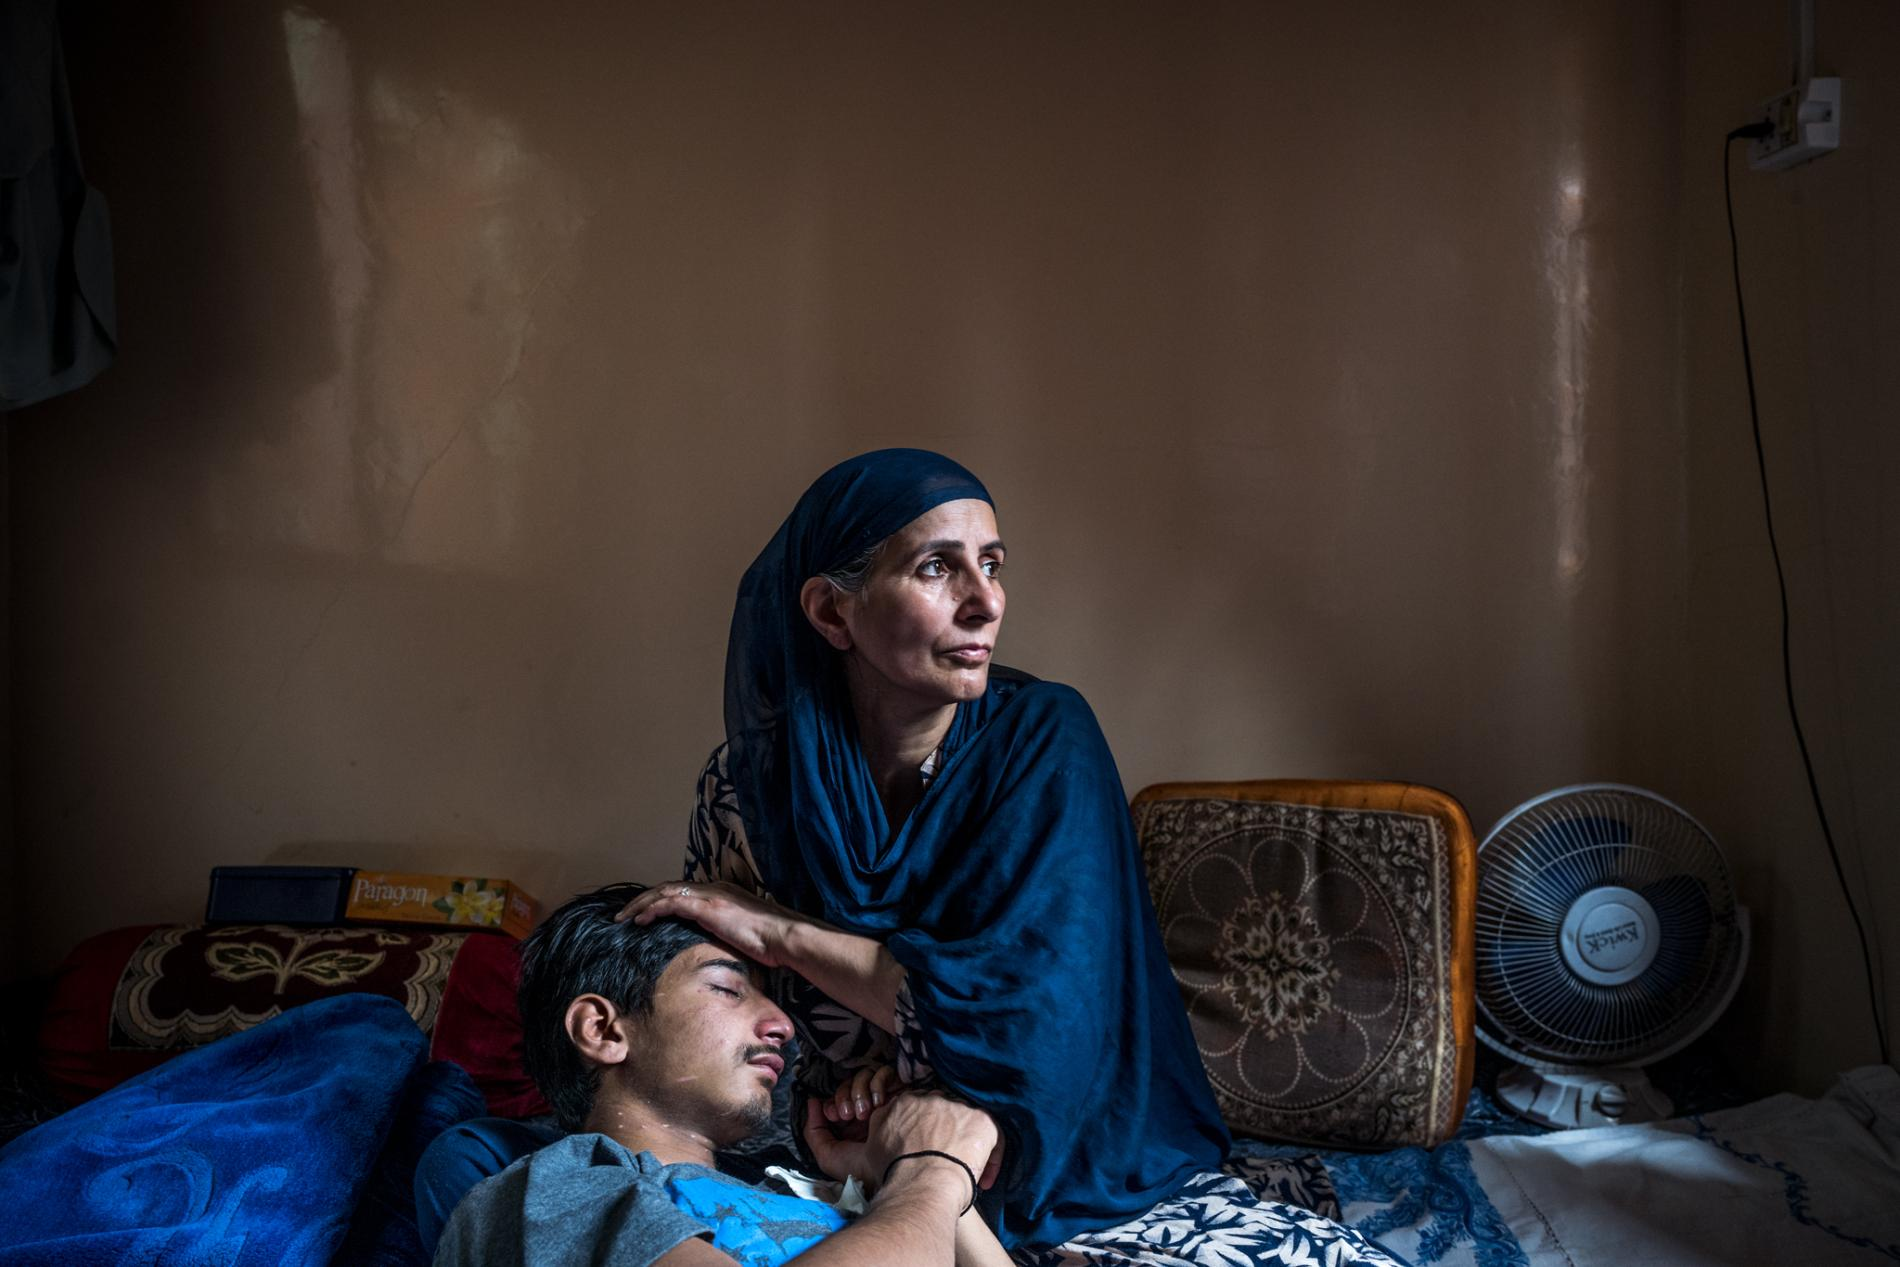 In kashmir, deep wounds, rising anger - National Geographic Magazine, June 5, 2018